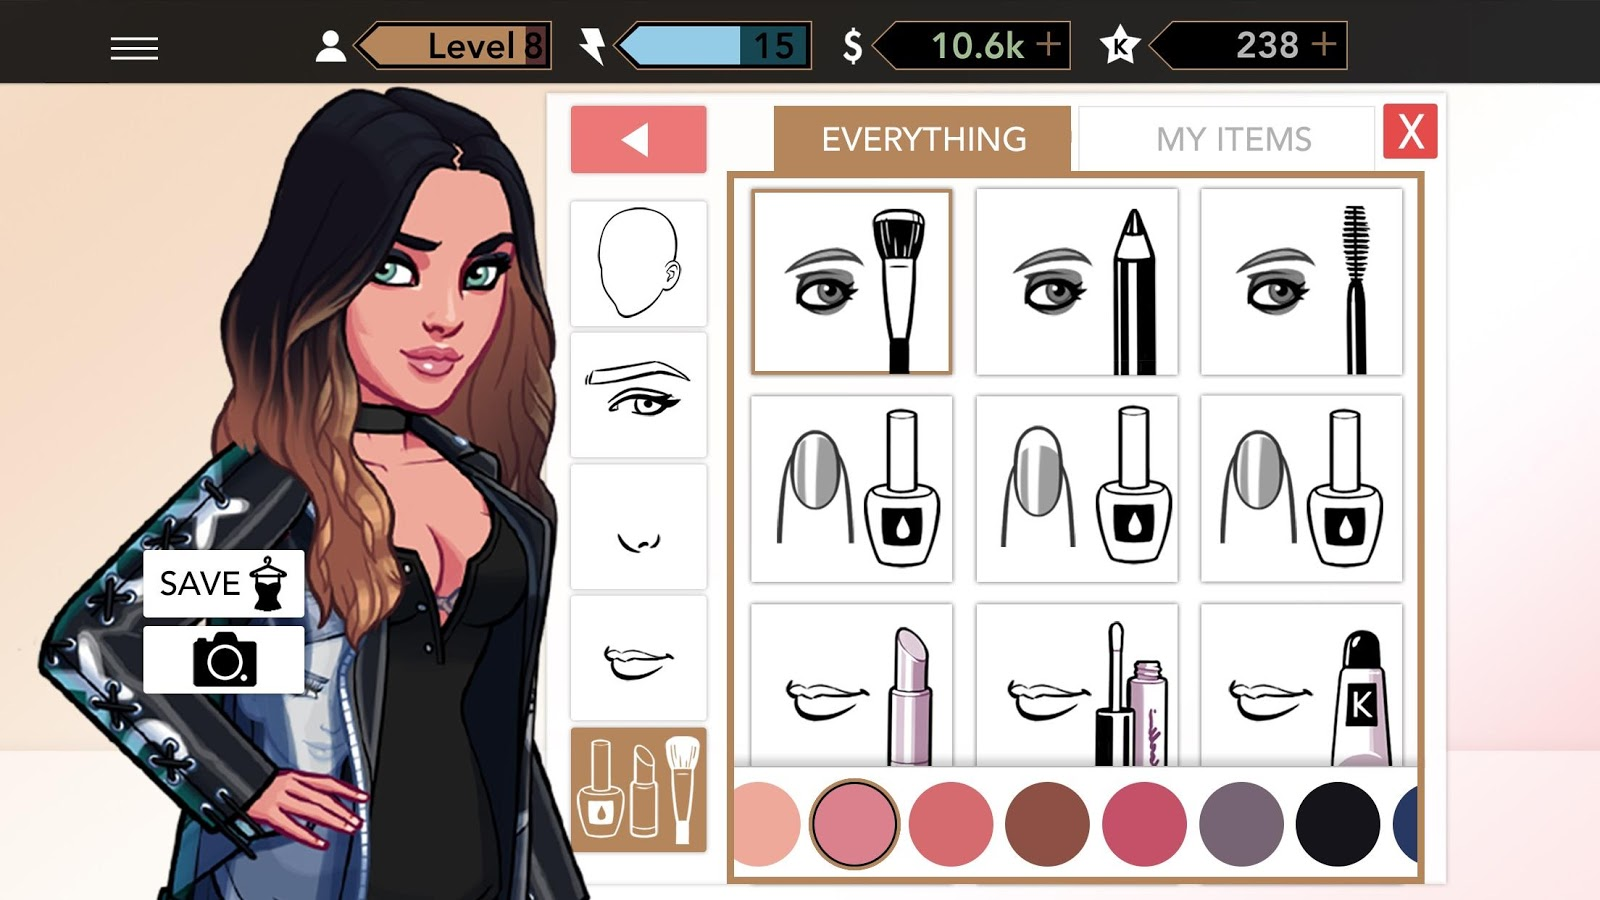 KIM KARDASHIAN: HOLLYWOOD: captura de pantalla